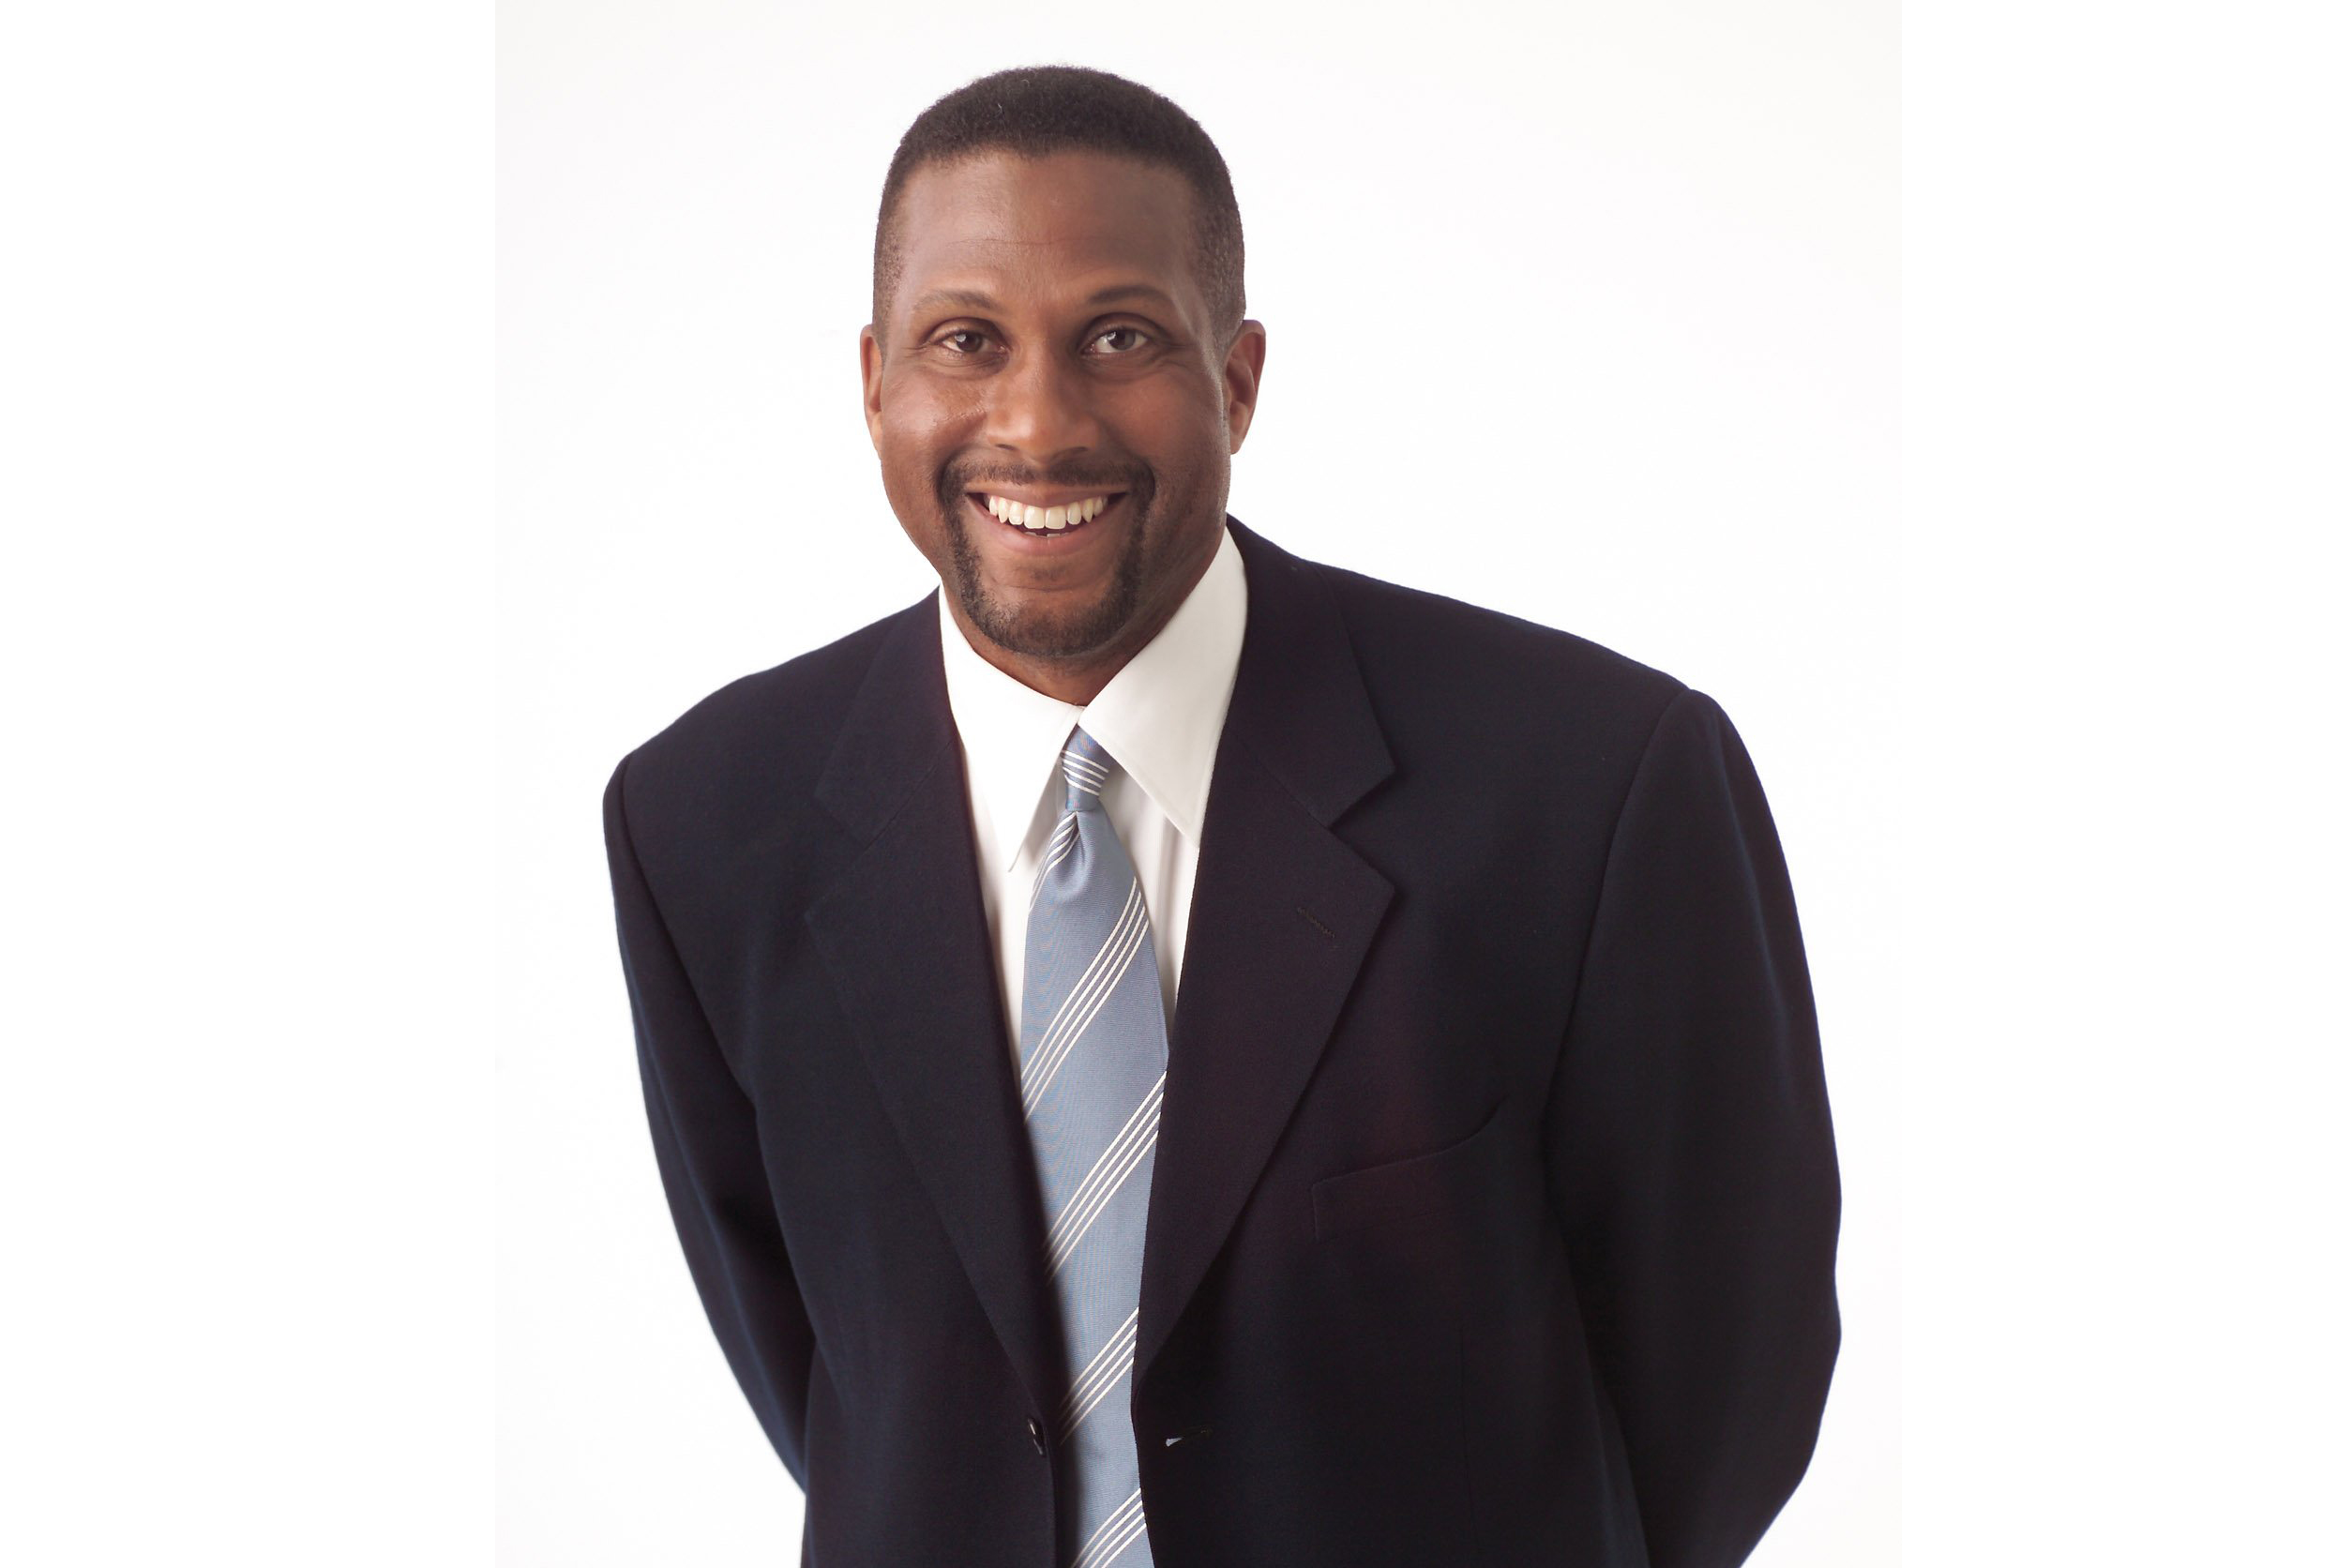 Tavis Smiley is a graduate of Indiana University's School of Public and Environmental Affairs.